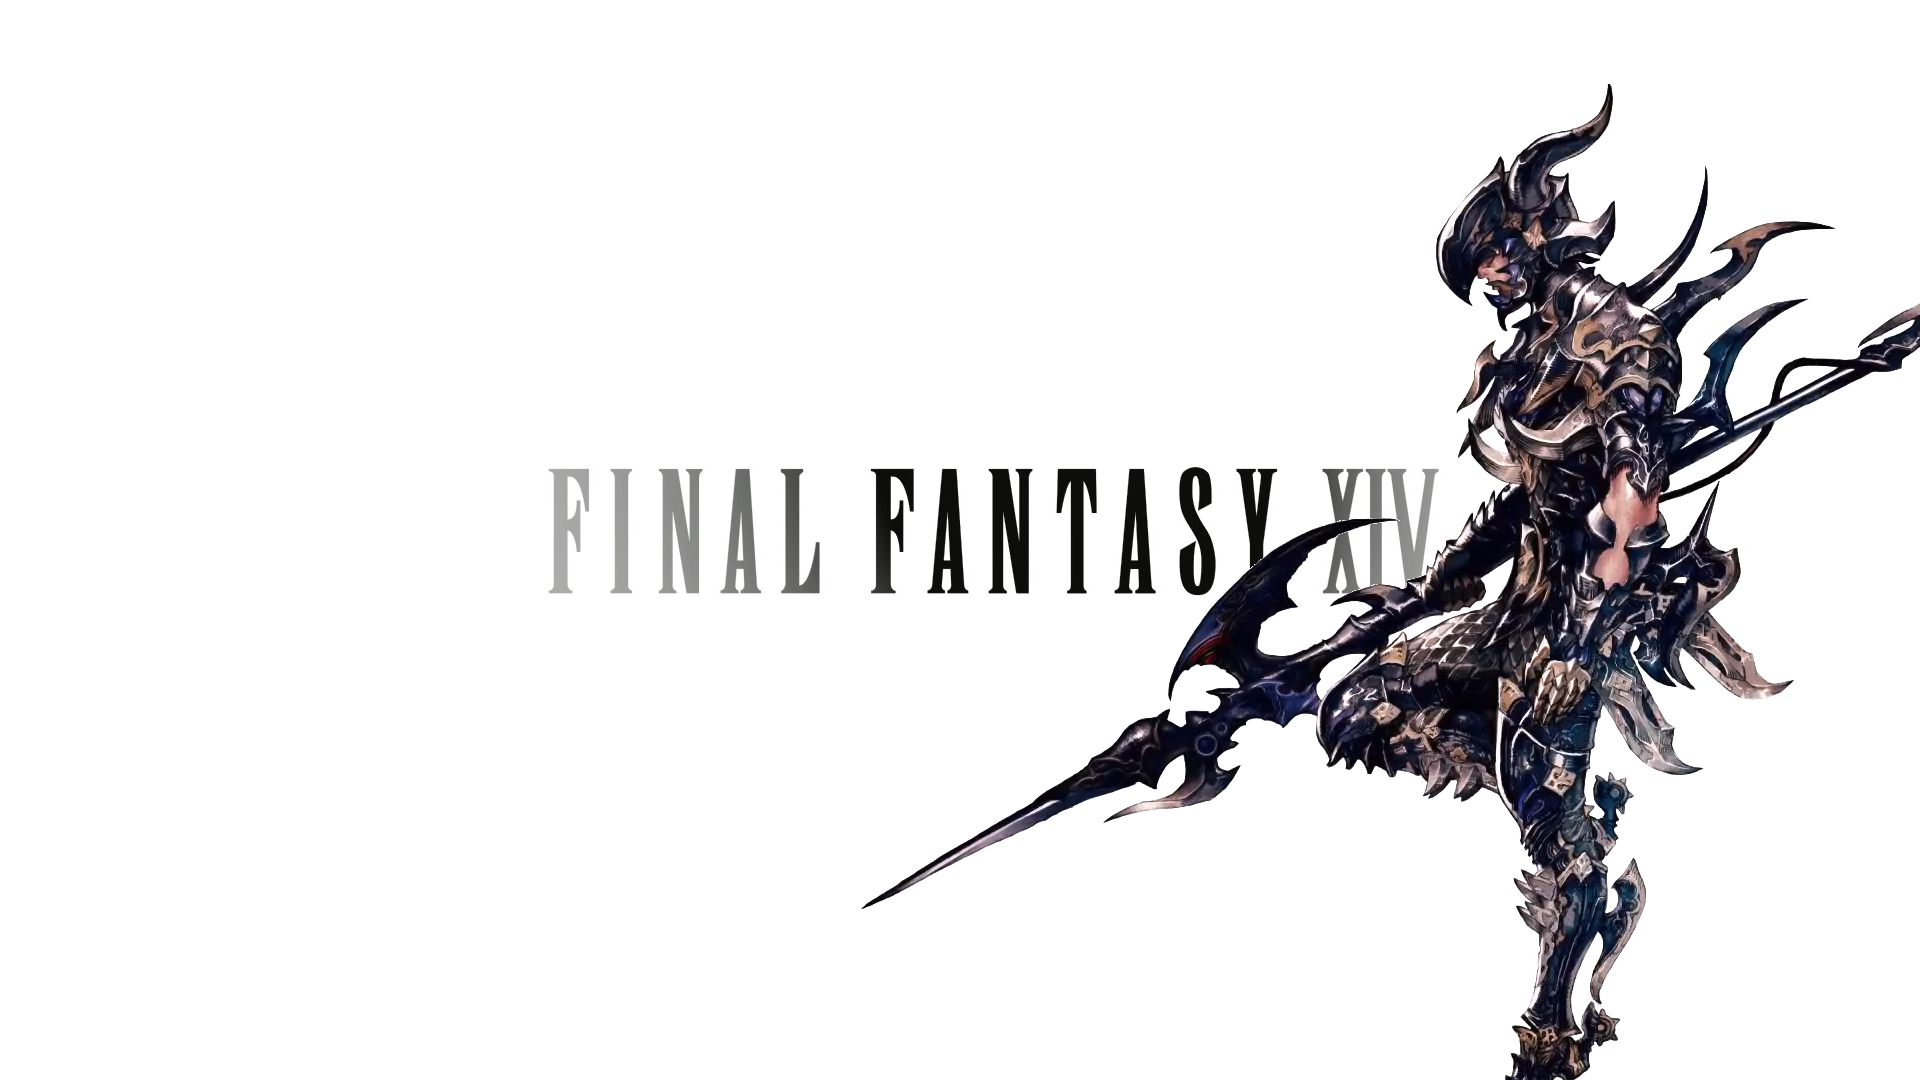 30 final fantasy xiv hd wallpapers backgrounds